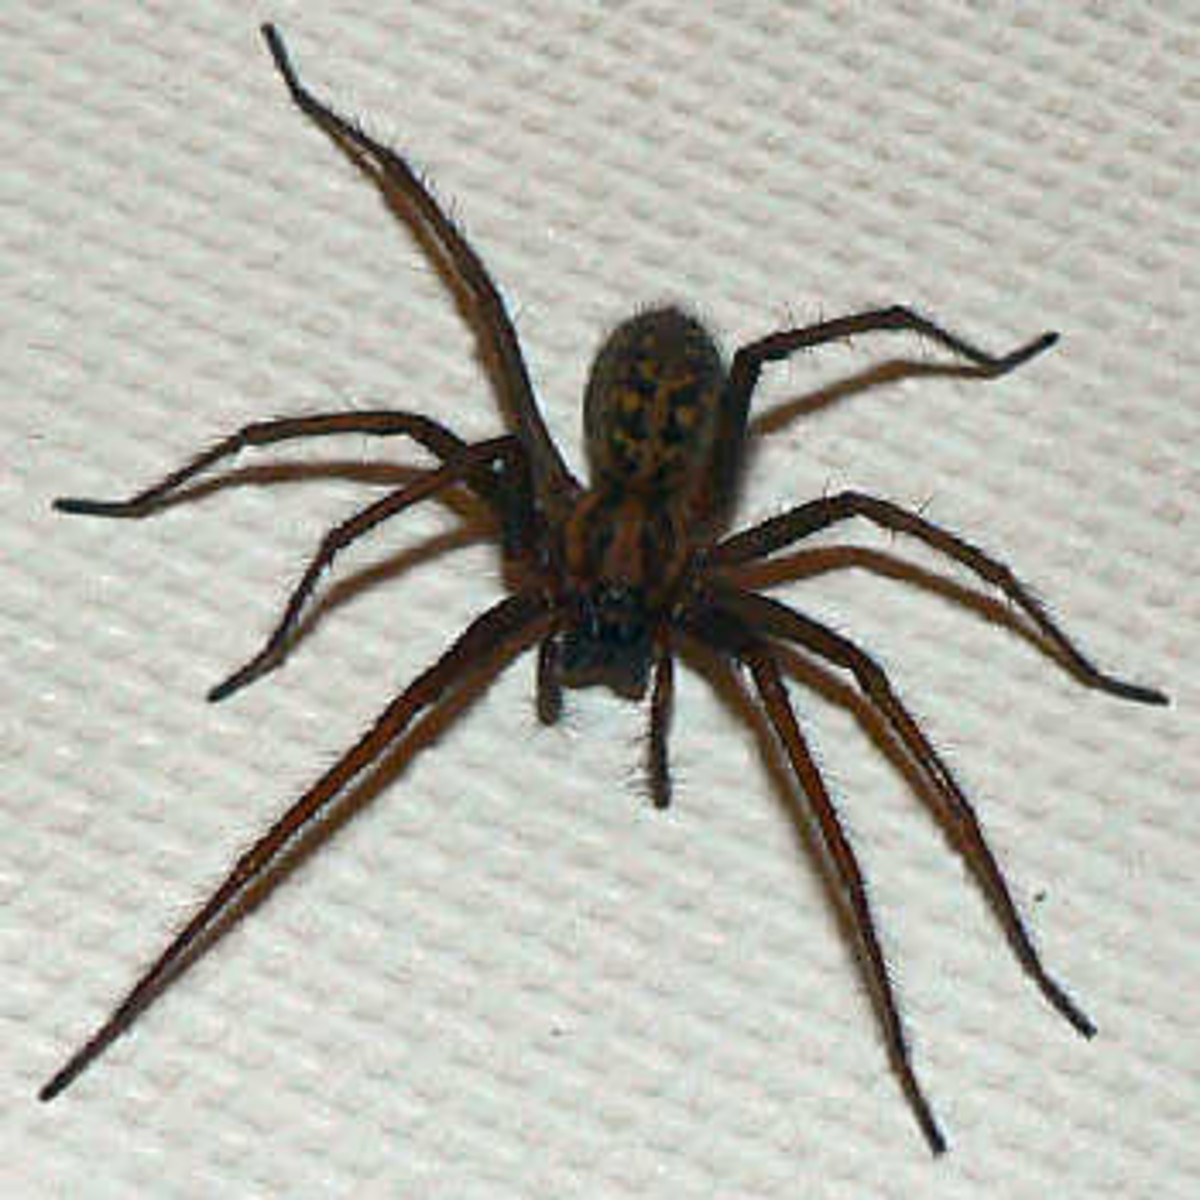 4 Reasons Not to Kill That Spider